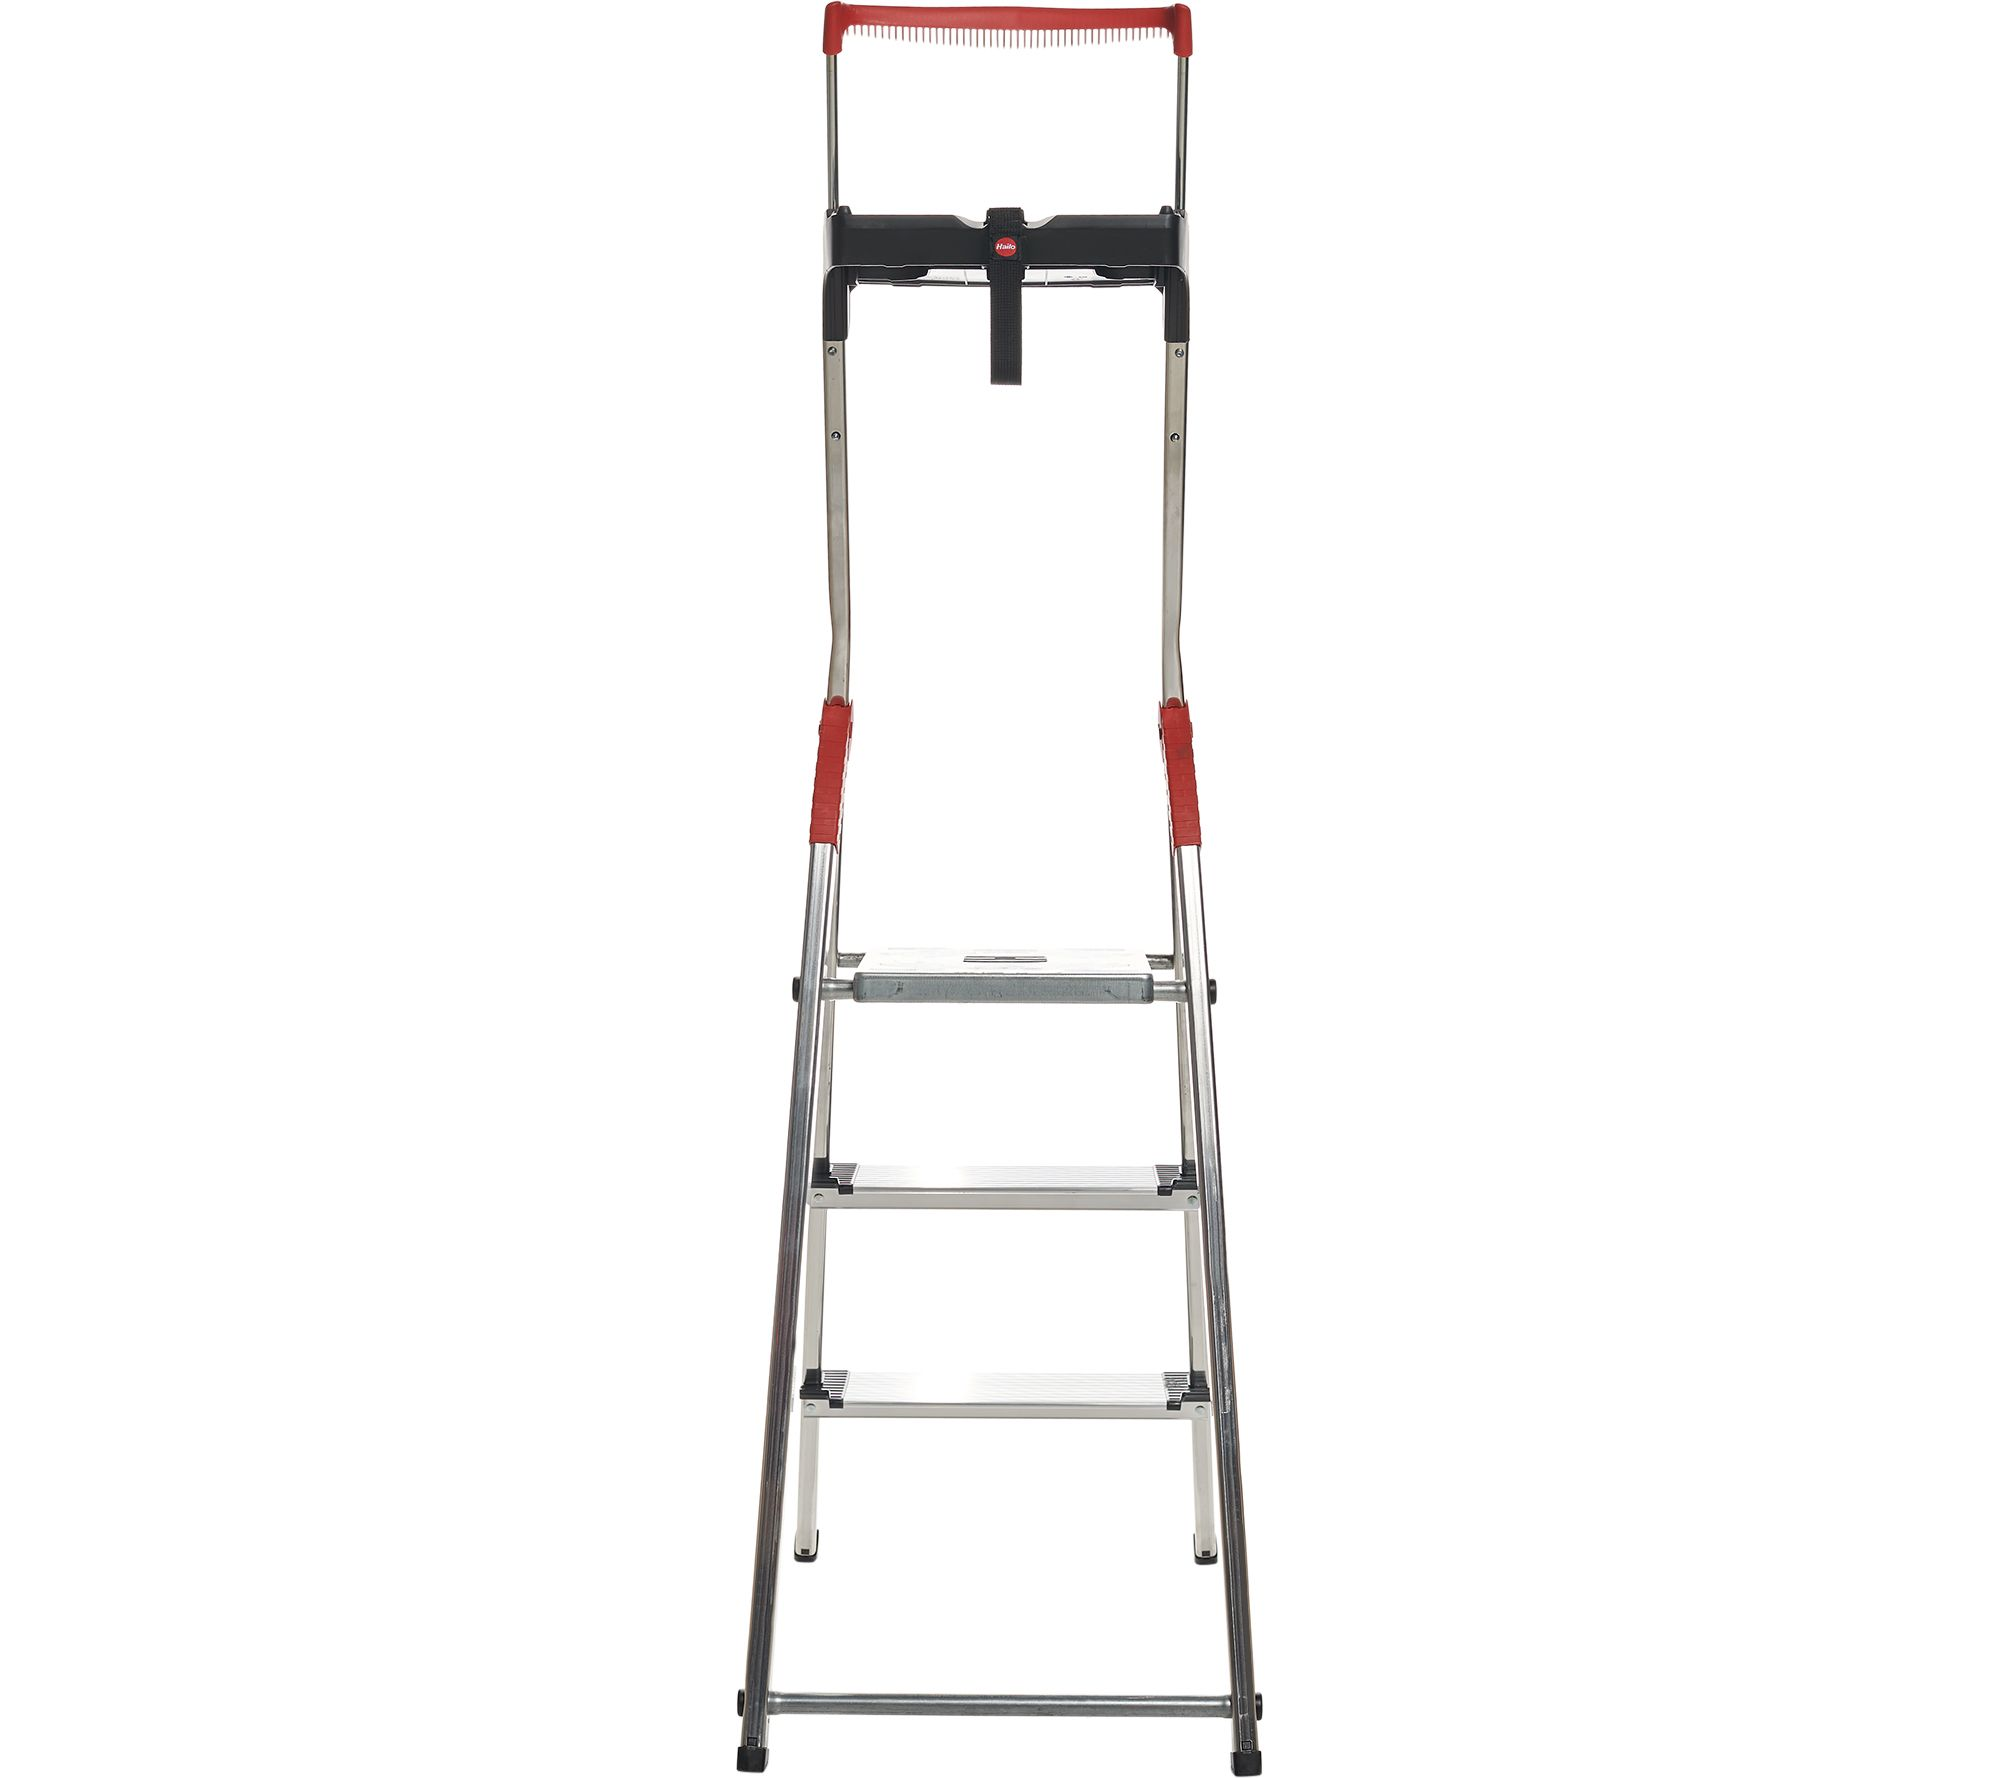 Surprising Hailo 3 Step Lightweight Ladder With Safety Rail Qvc Com Inzonedesignstudio Interior Chair Design Inzonedesignstudiocom